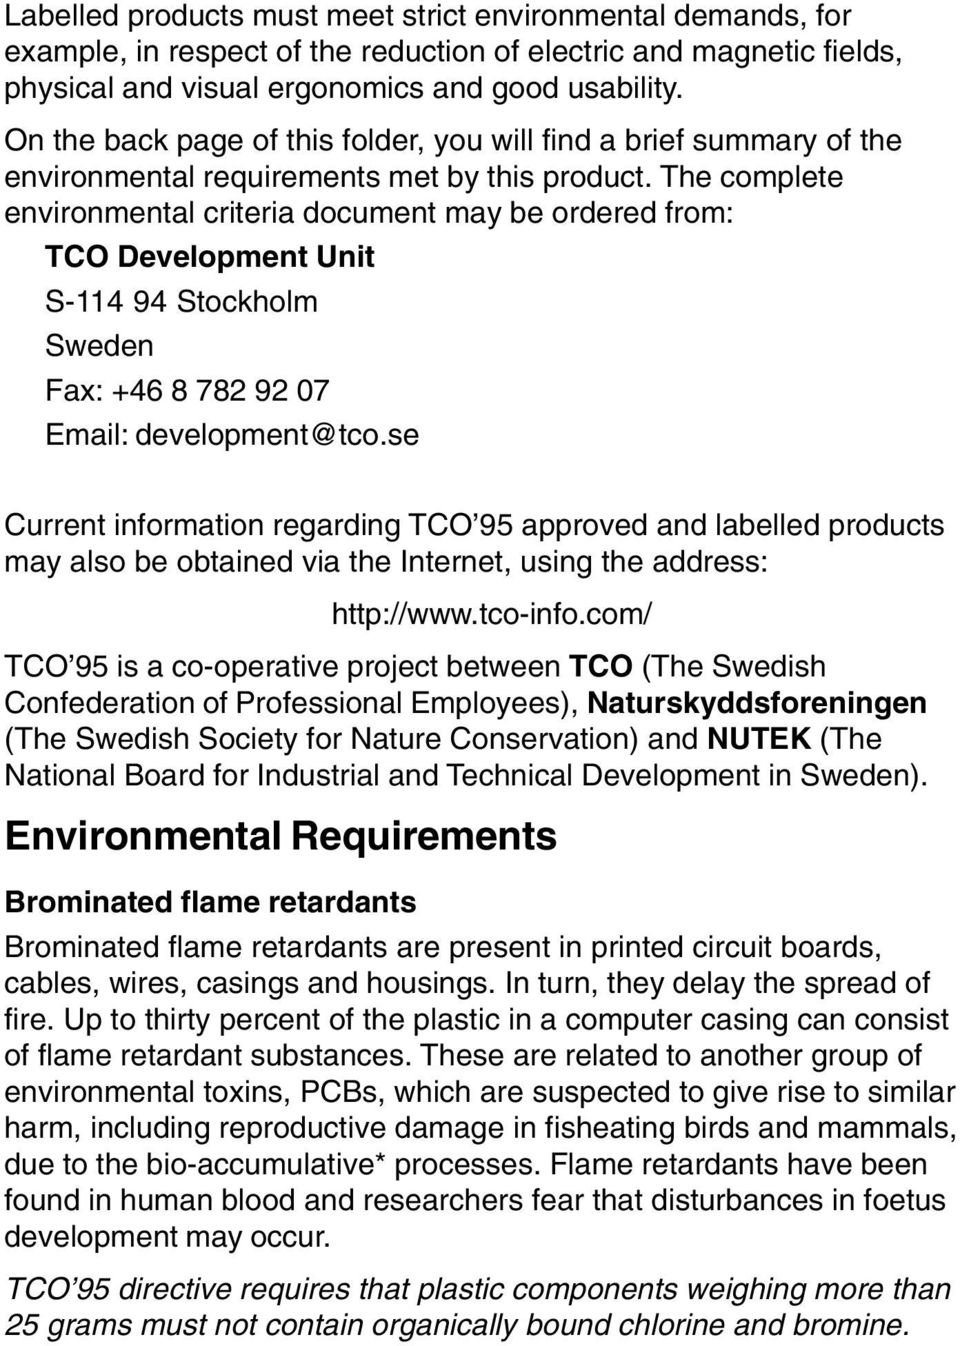 The complete environmental criteria document may be ordered from: TCO Development Unit S-114 94 Stockholm Sweden Fax: +46 8 782 92 07 Email: development@tco.